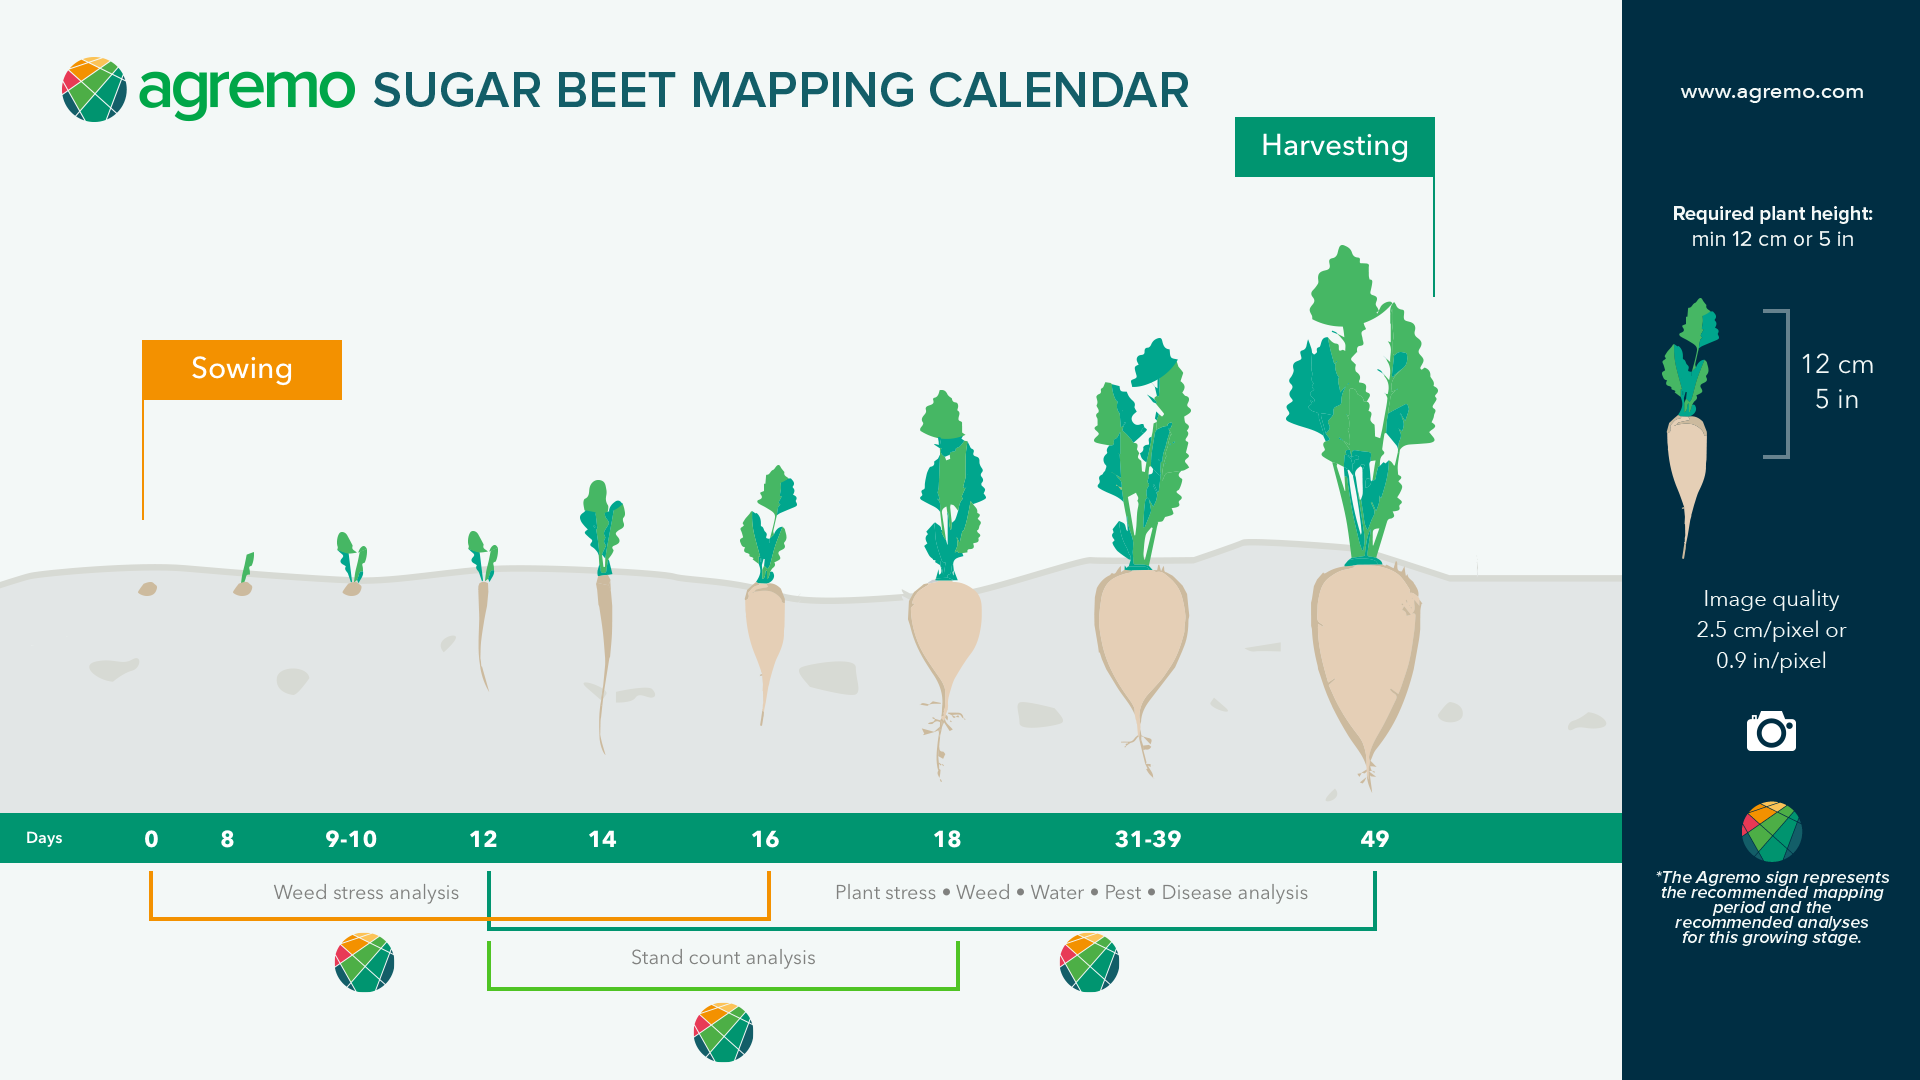 $18M reasons to fight the sugar beet diseases with drones